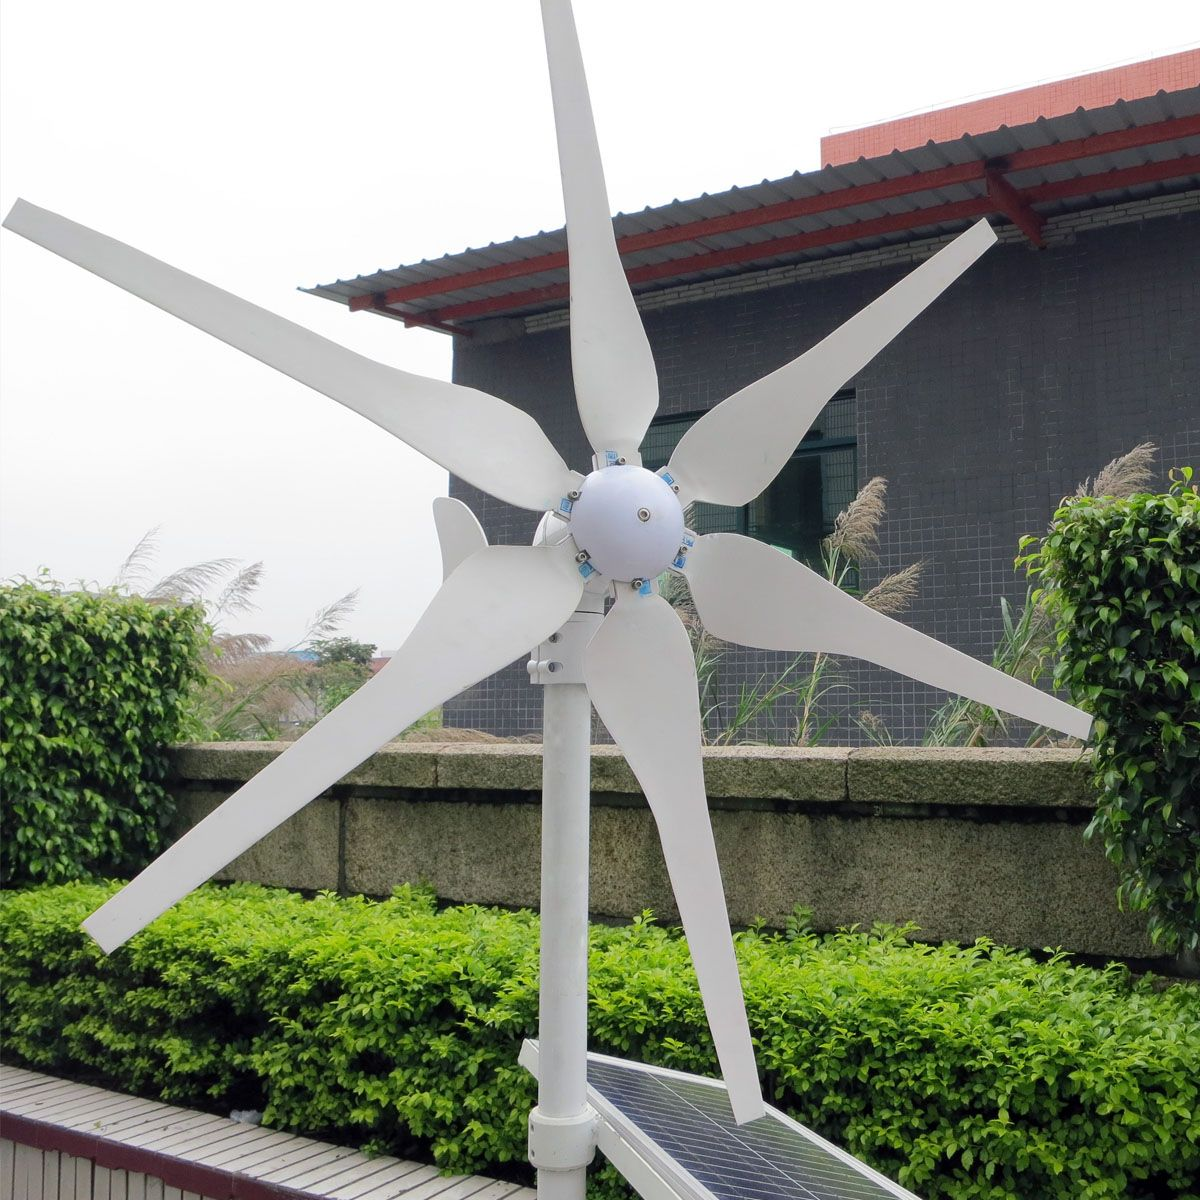 500W 12V/24V Environmental 6 Blades Miniature Wind Turbine Mini Wind Turbine Energy Generator Residential Home With Controller